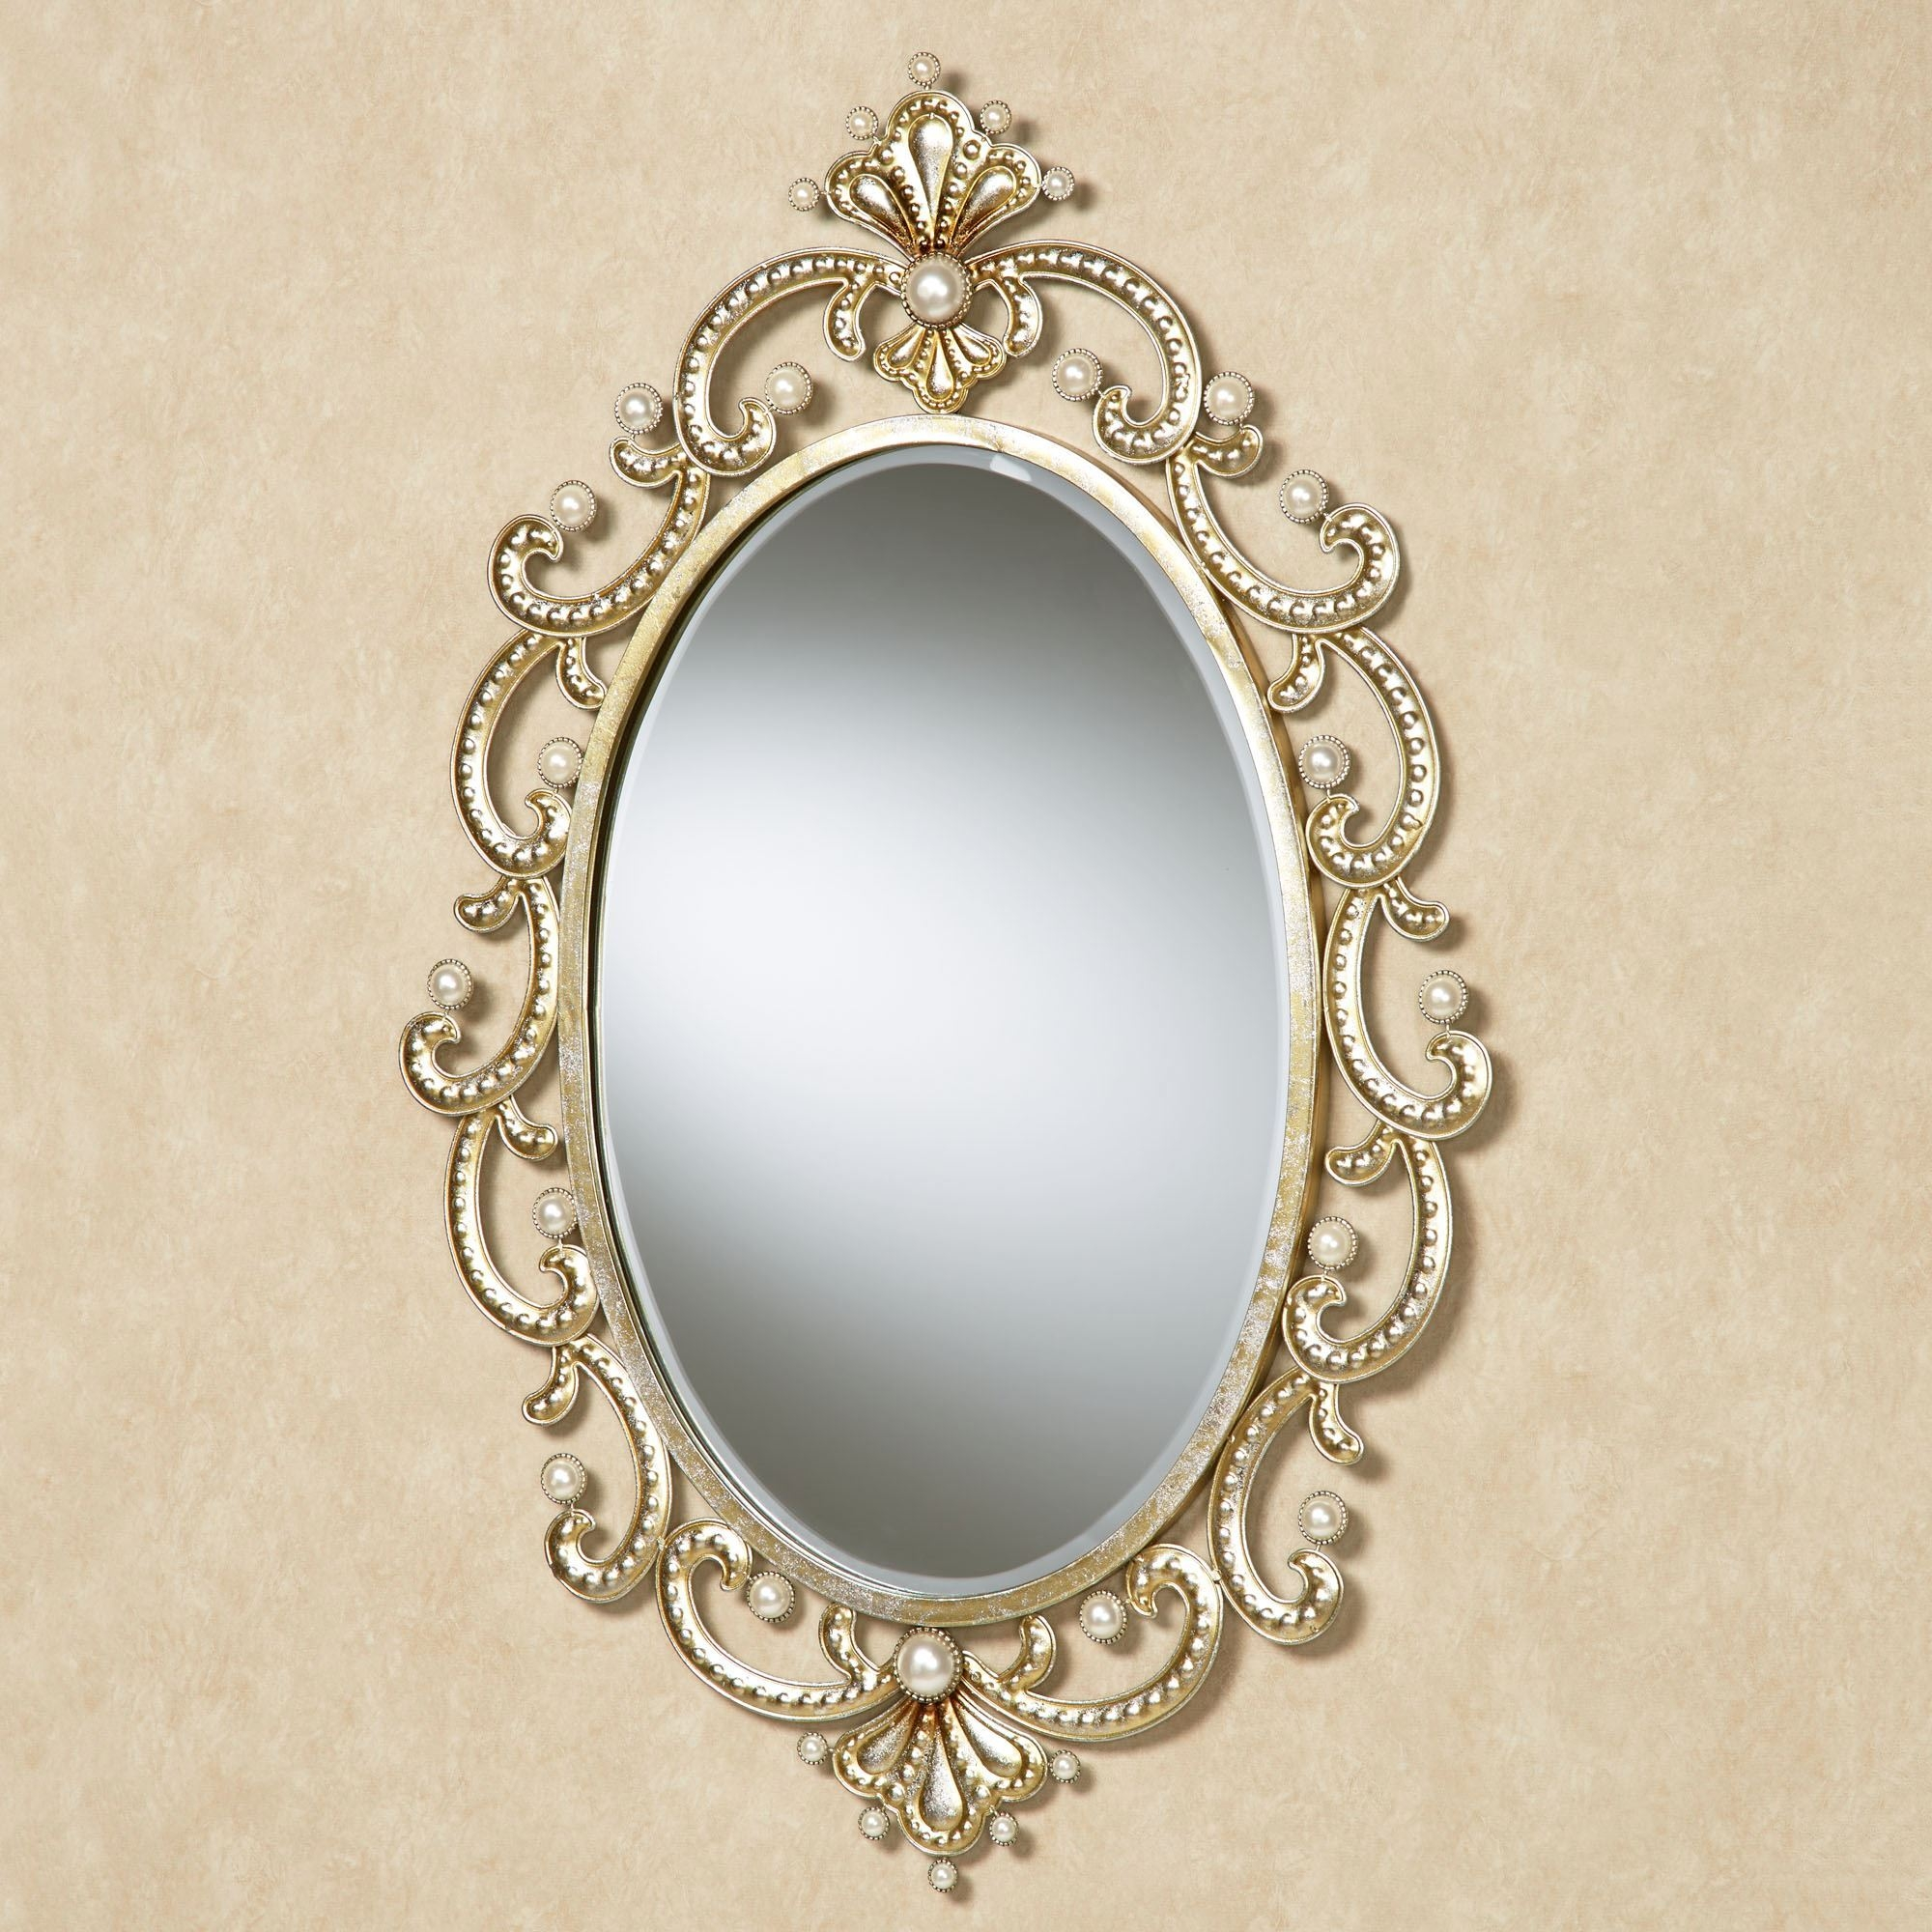 Giorgianna Pearl Oval Wall Mirror Regarding Champagne Wall Mirror (View 7 of 15)